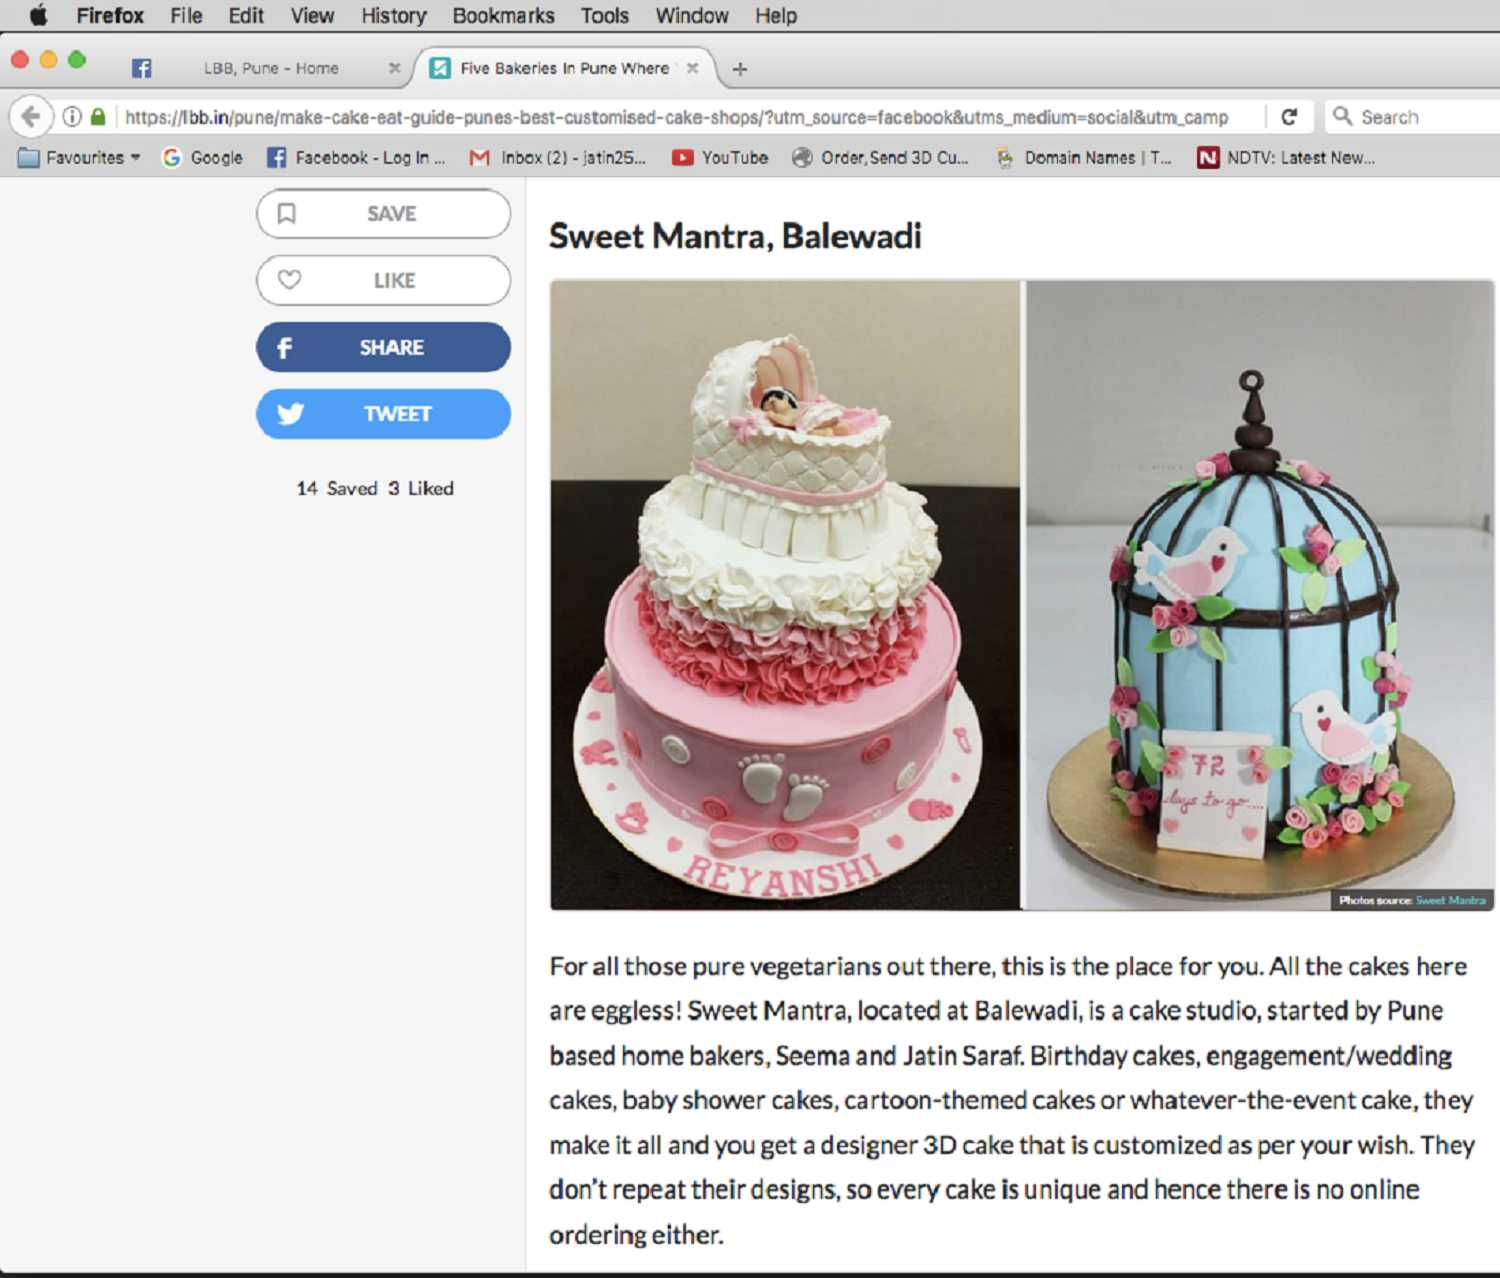 Sweet Mantra custom cake studio in Pune recommended by LBB